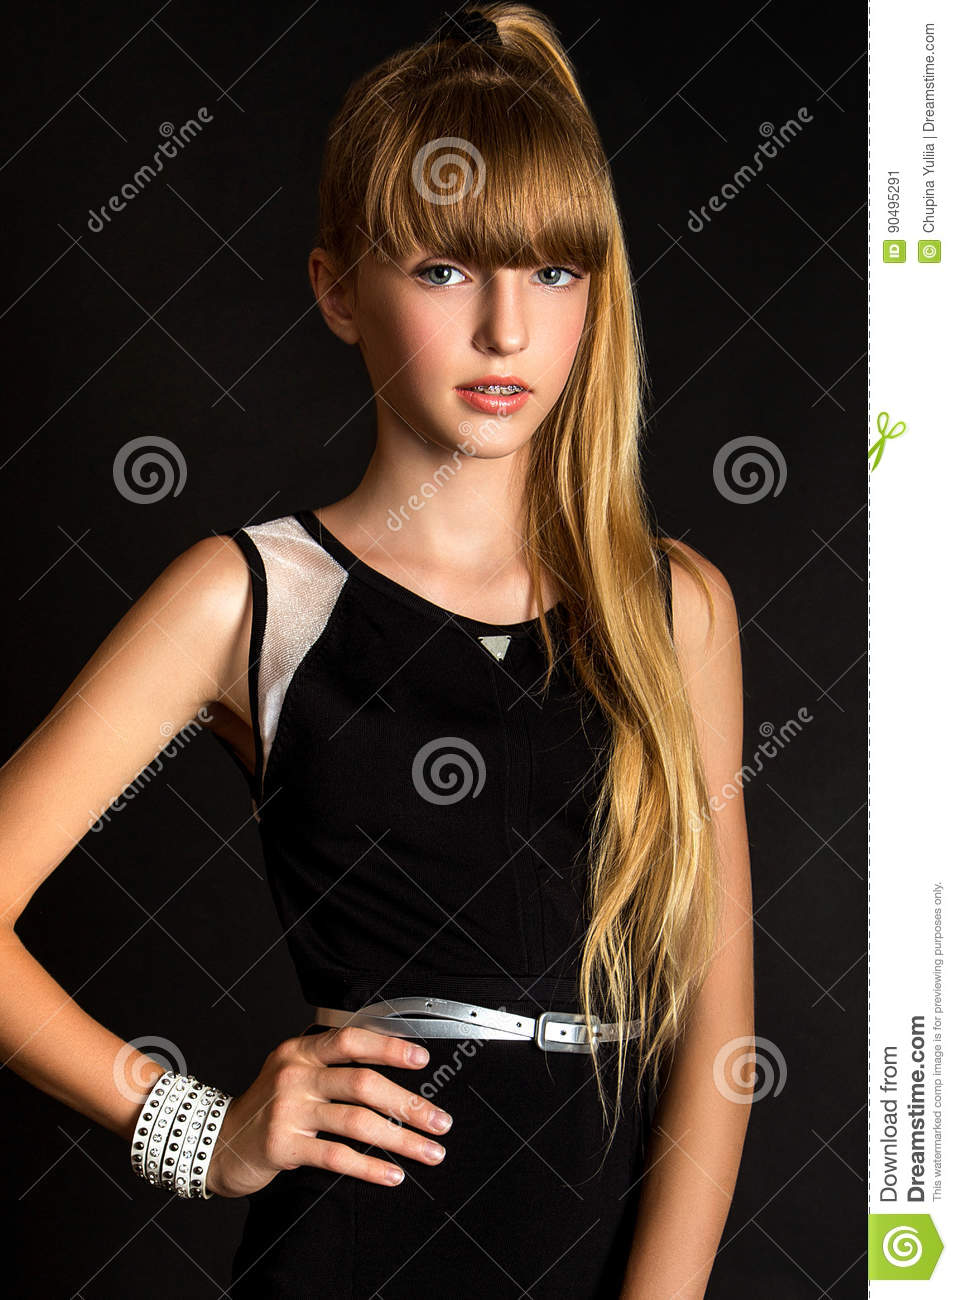 Pretty Girls That Make The World A Little More Beautiful: A Pretty Young Girl On The Black Background Stock Image